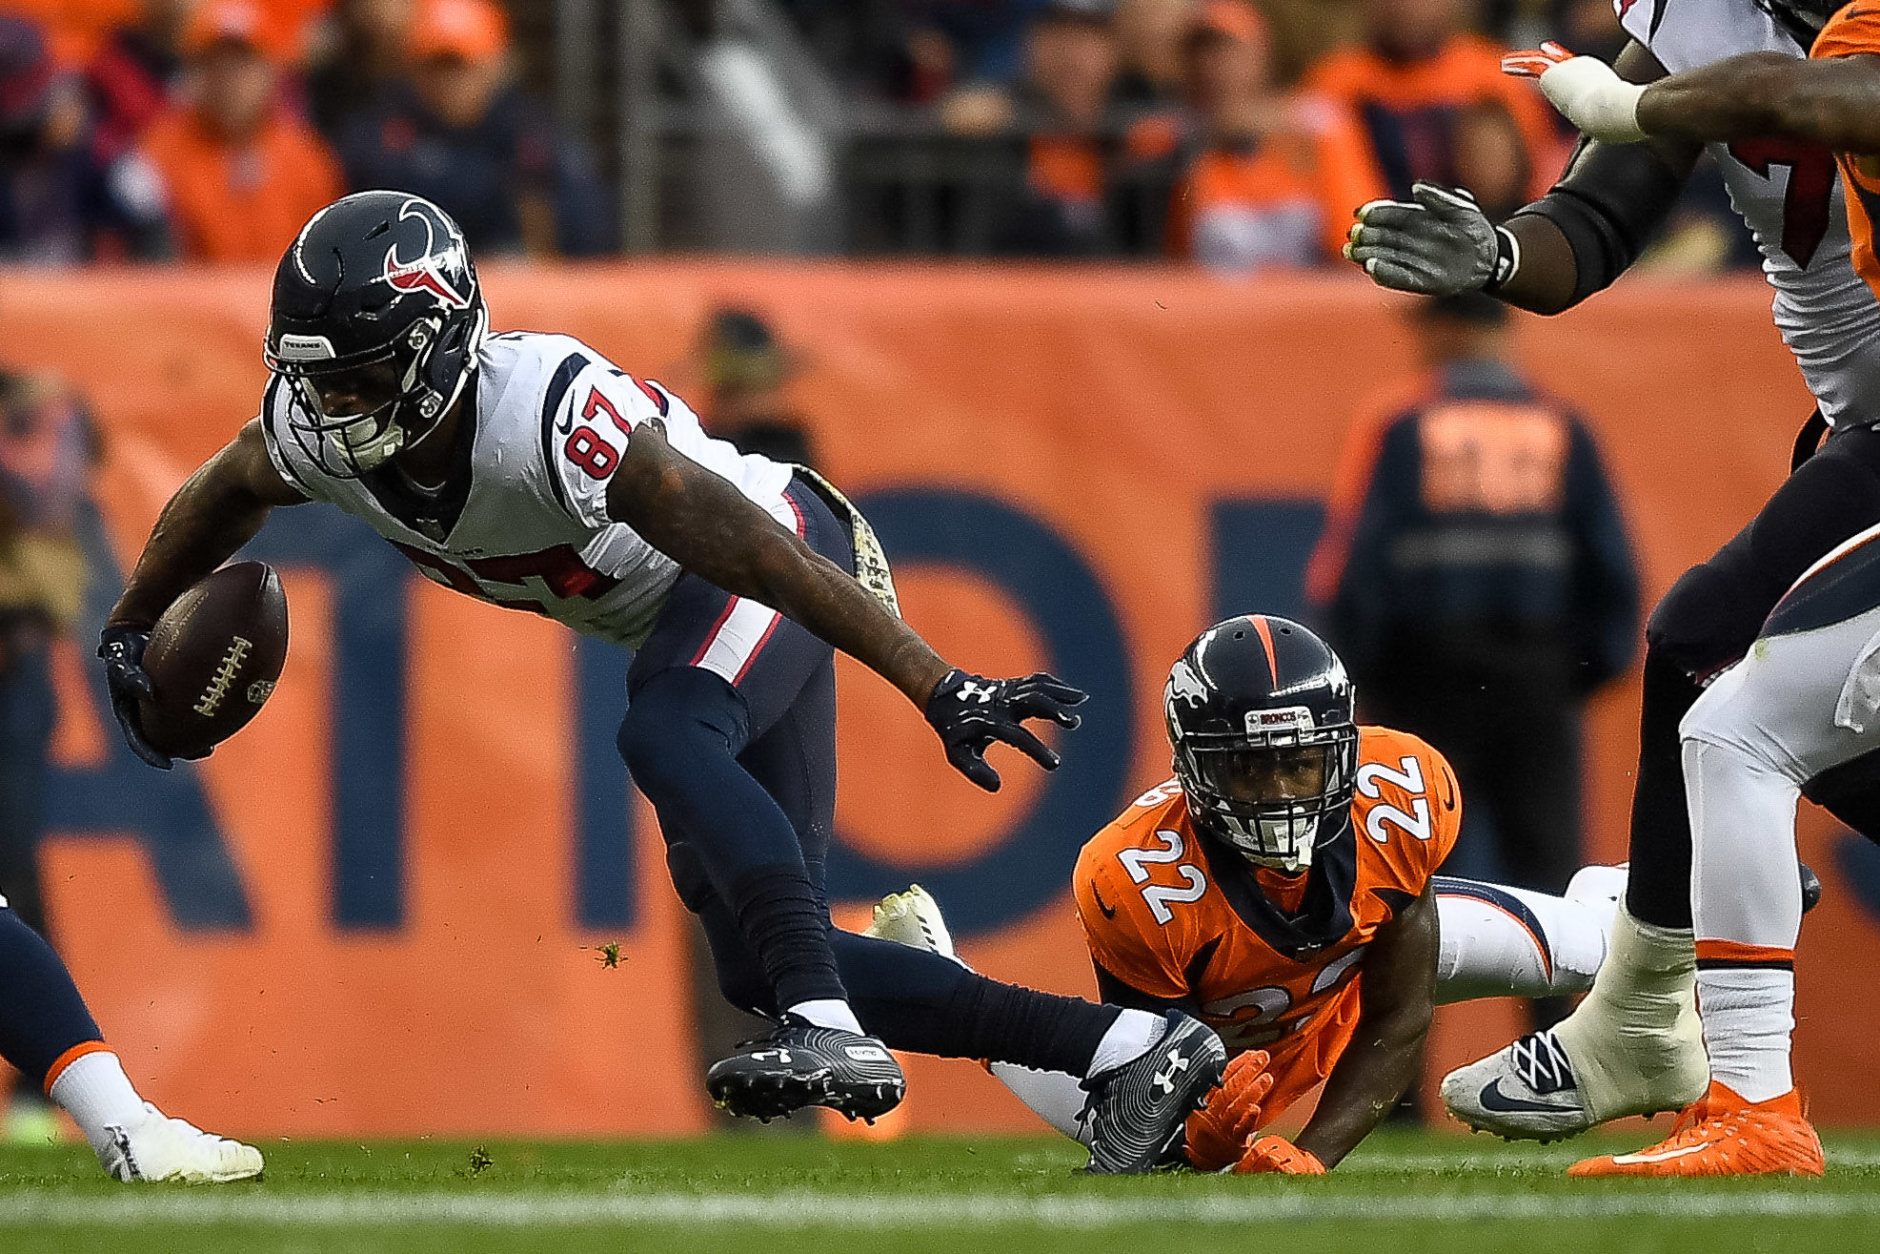 DENVER, CO - NOVEMBER 4:  Wide receiver Demaryius Thomas #87 of the Houston Texans breaks away from a tackle attempt by defensive back Tramaine Brock #22 of the Denver Broncos in the first quarter of a game at Broncos Stadium at Mile High on November 4, 2018 in Denver, Colorado. (Photo by Dustin Bradford/Getty Images)